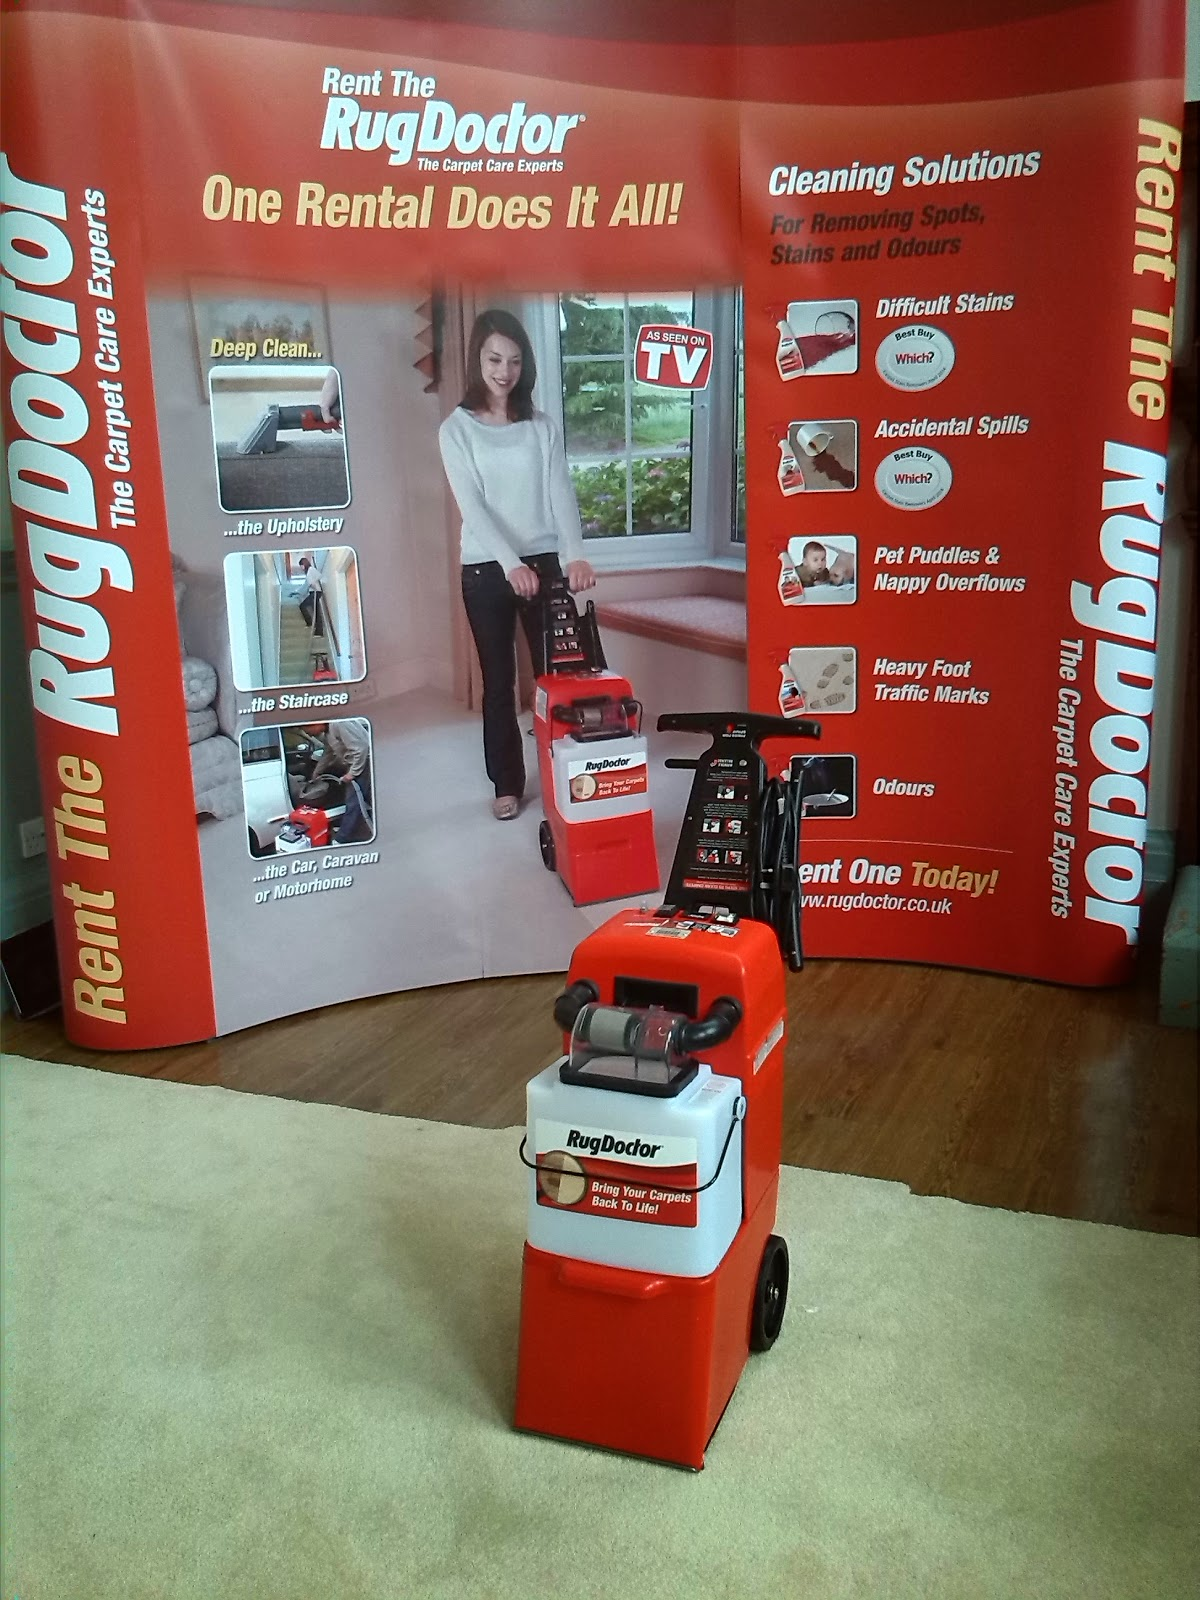 How Much To Hire Carpet Cleaner From Tesco Lets See